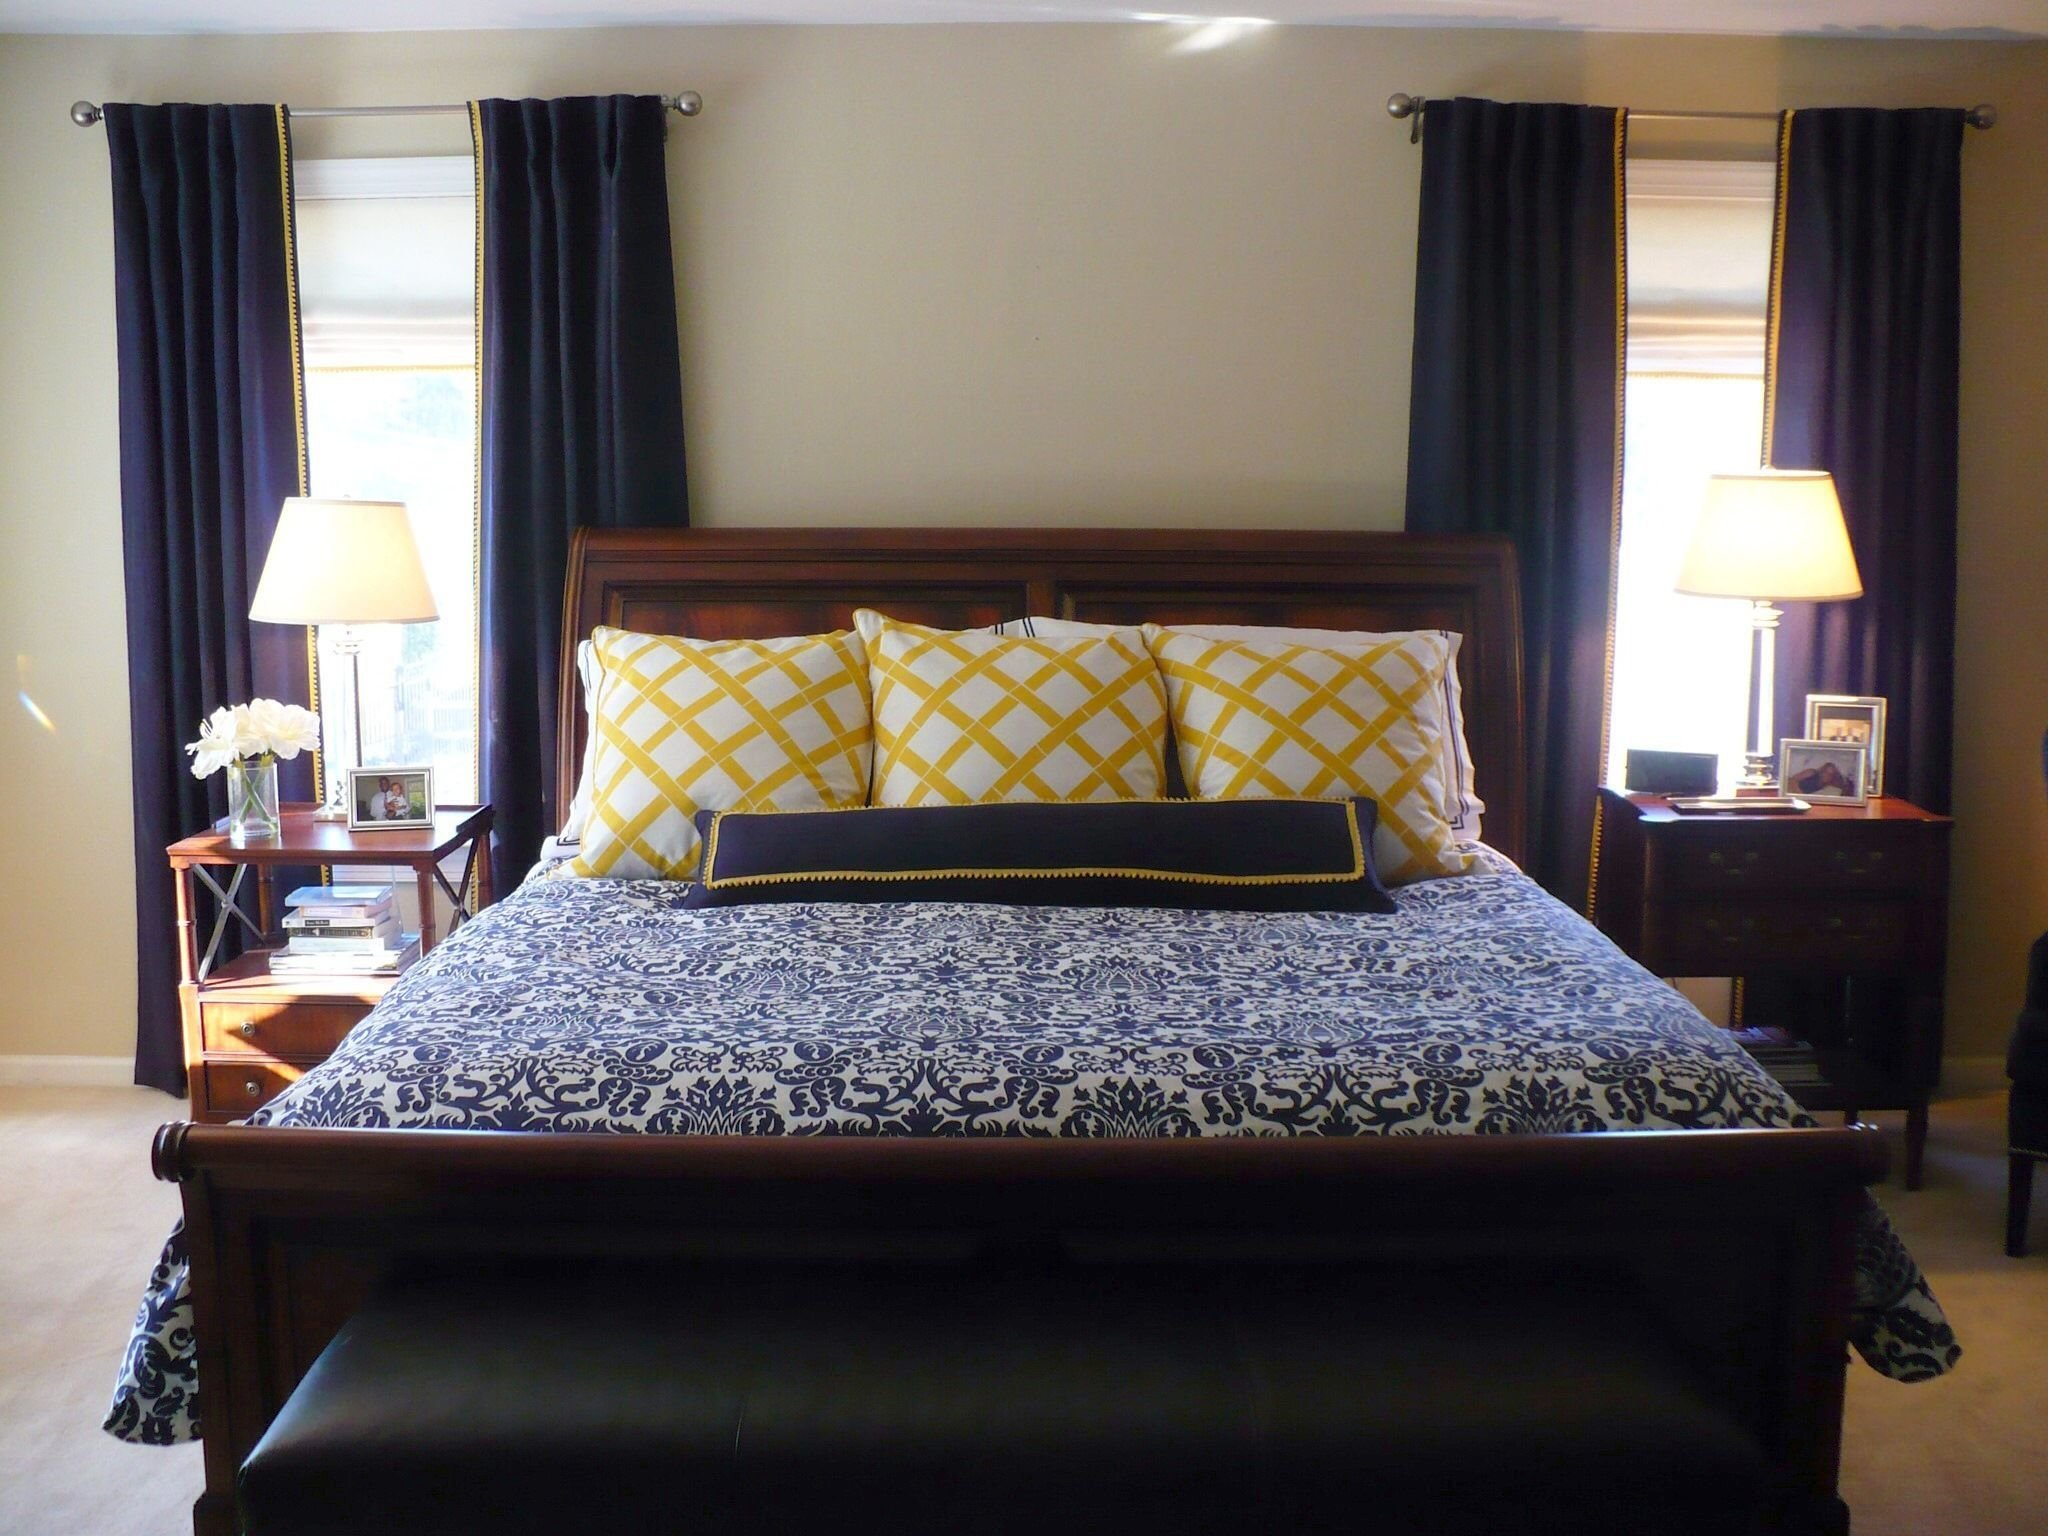 Best Navy And Yellow Master Bedroom Amy Barrickman Design With Pictures